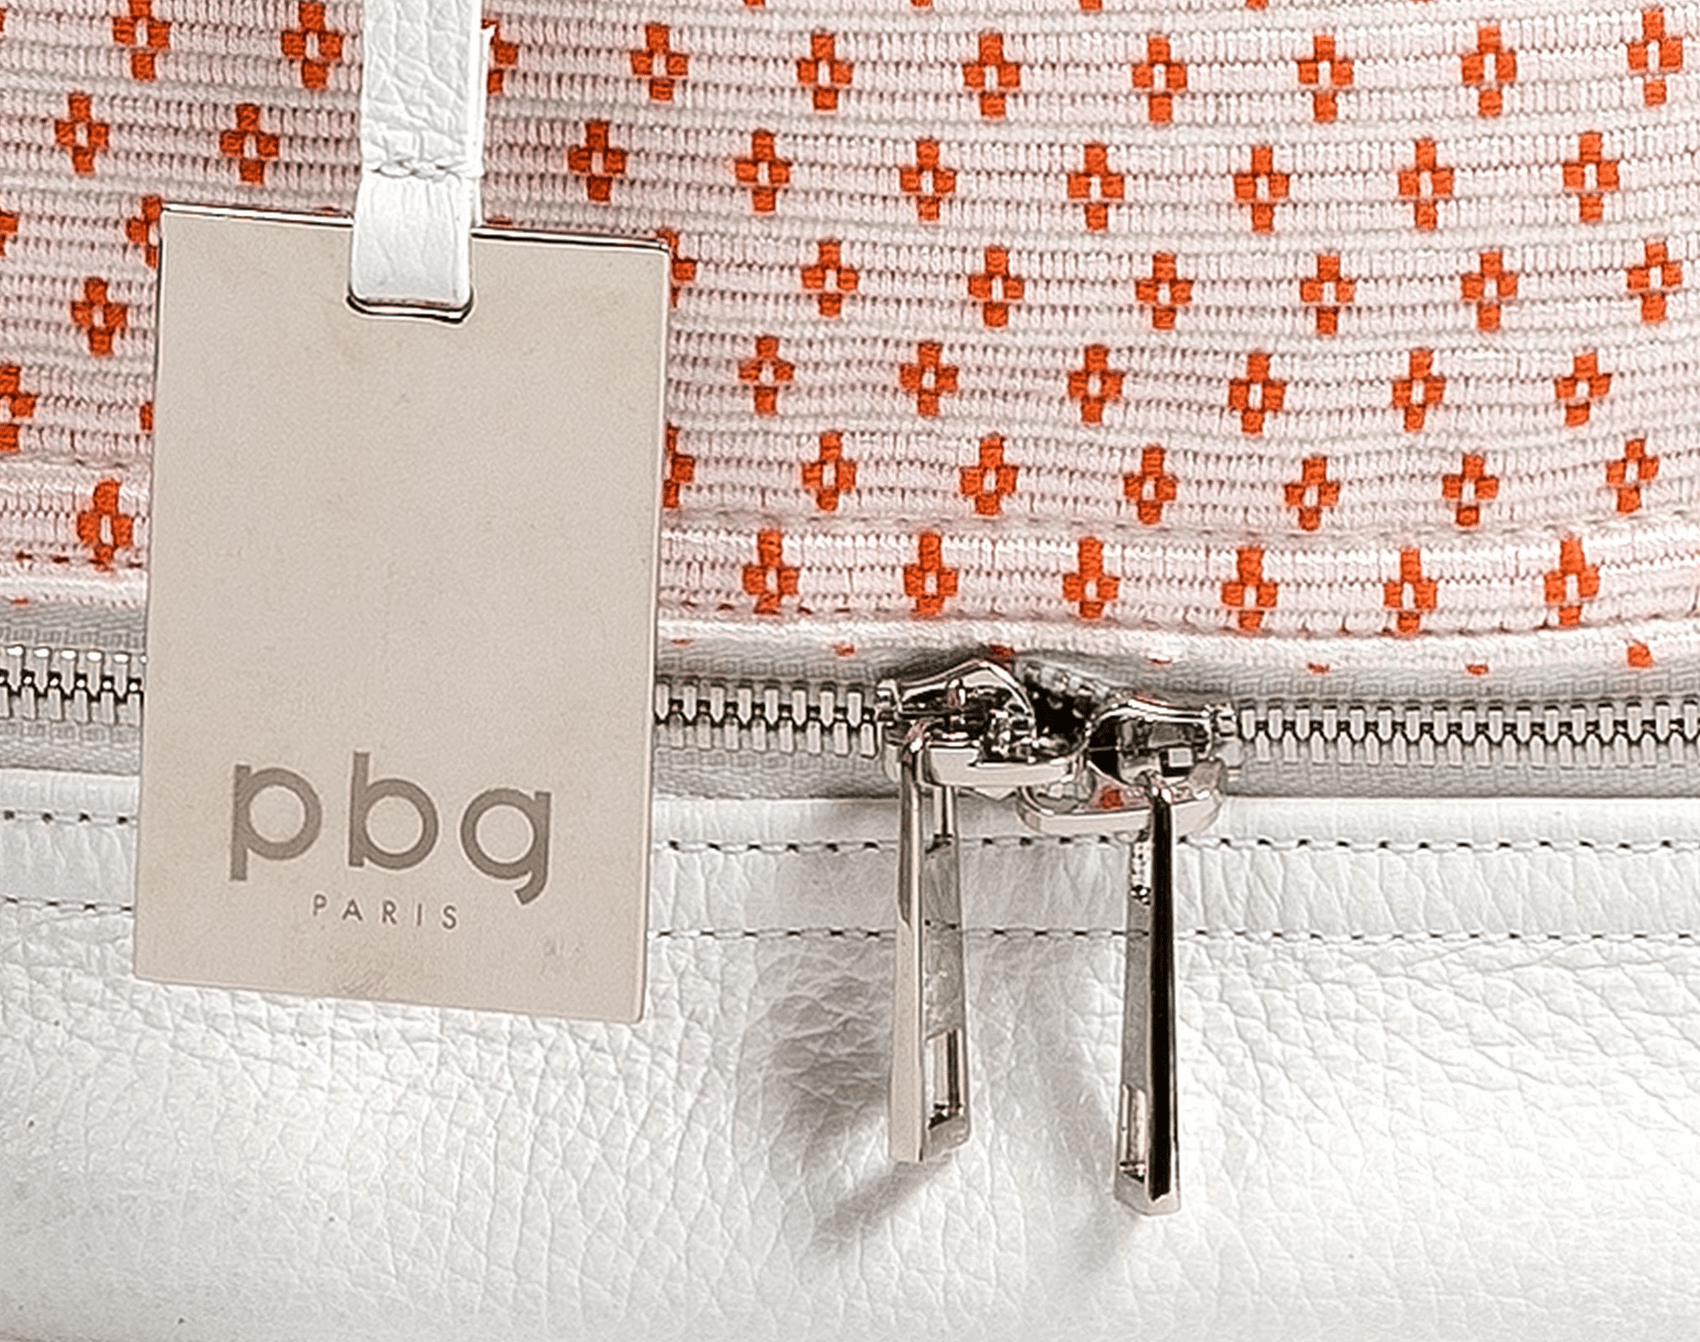 PBG PARIS Bags of Hope Backpack